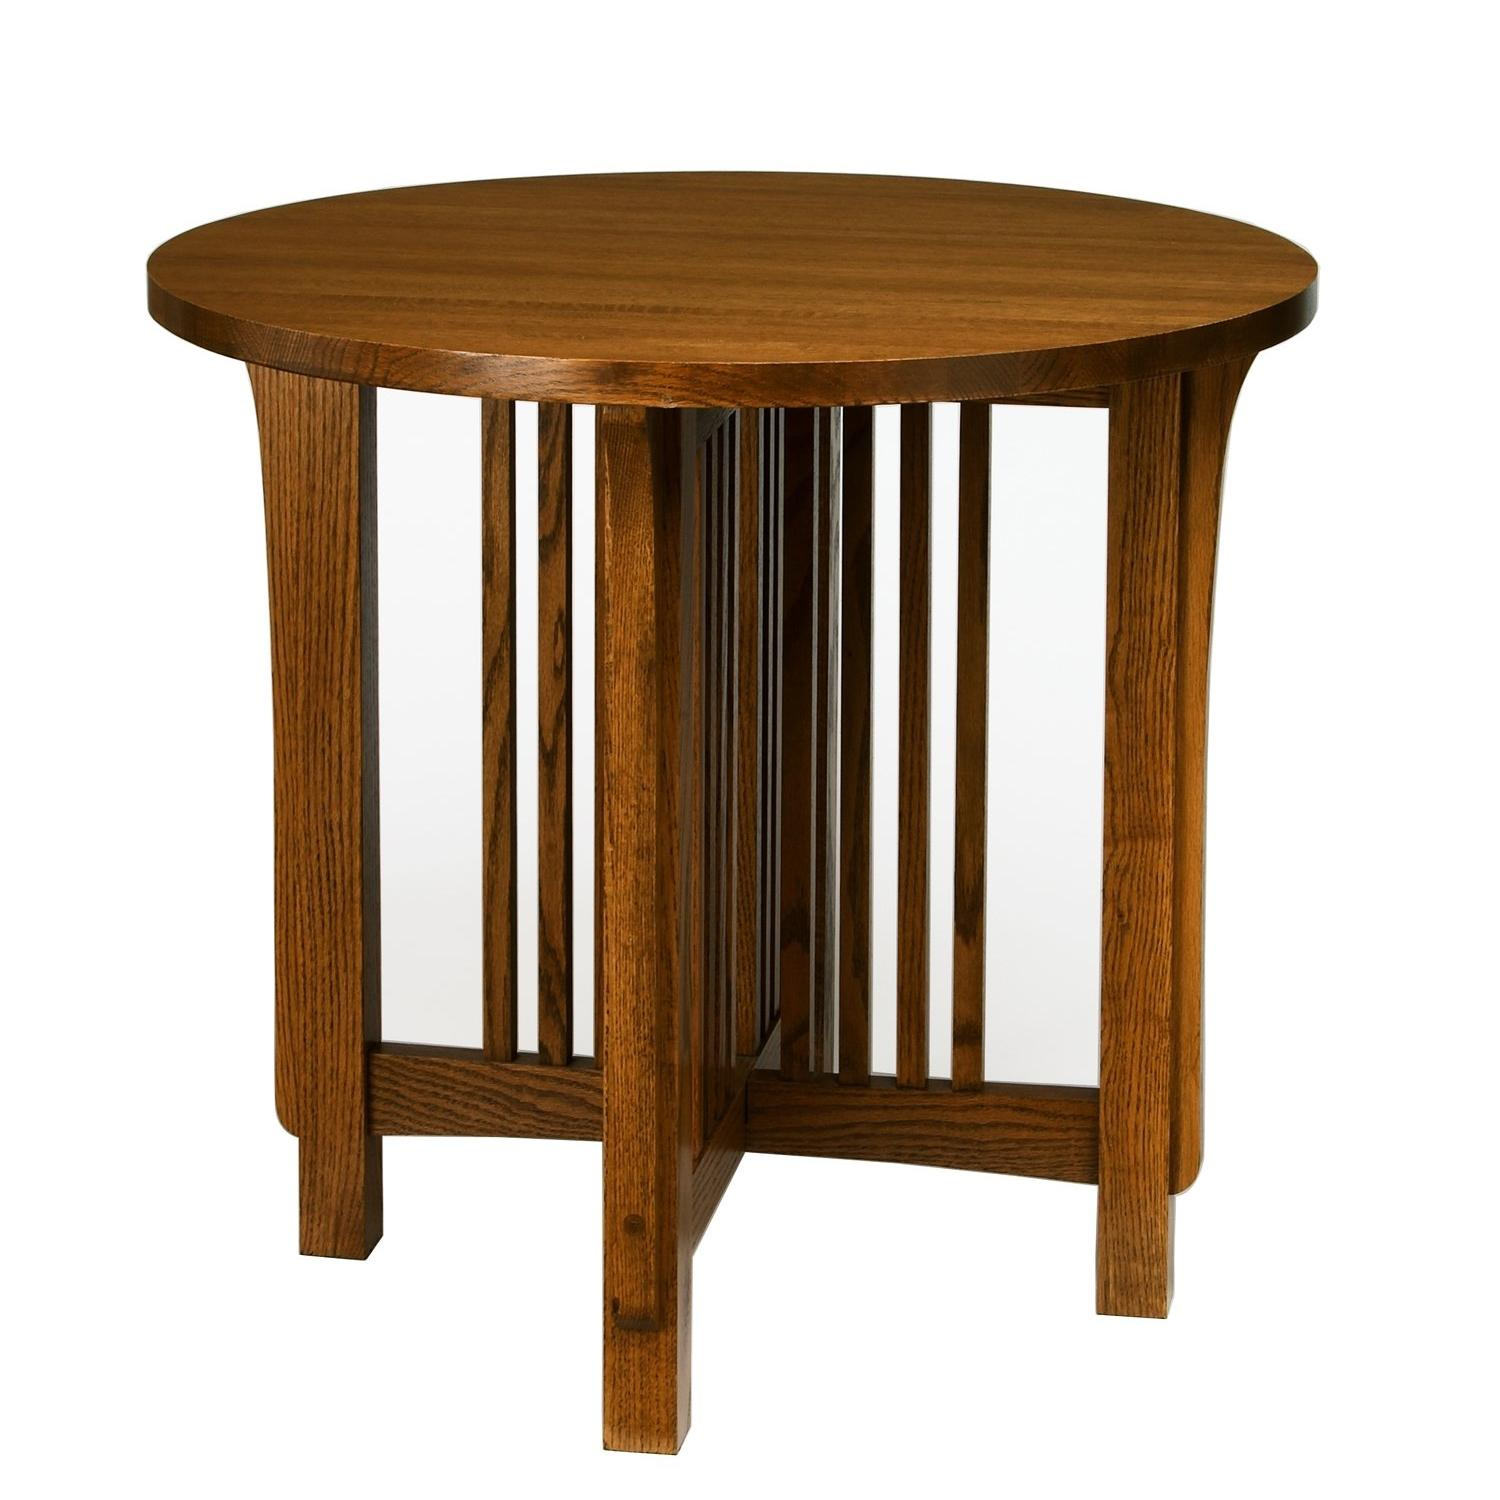 Aa Laun Coffee Table Aa Laun Arts And Crafts Round Lamp Table Ahfa End Table Dealer